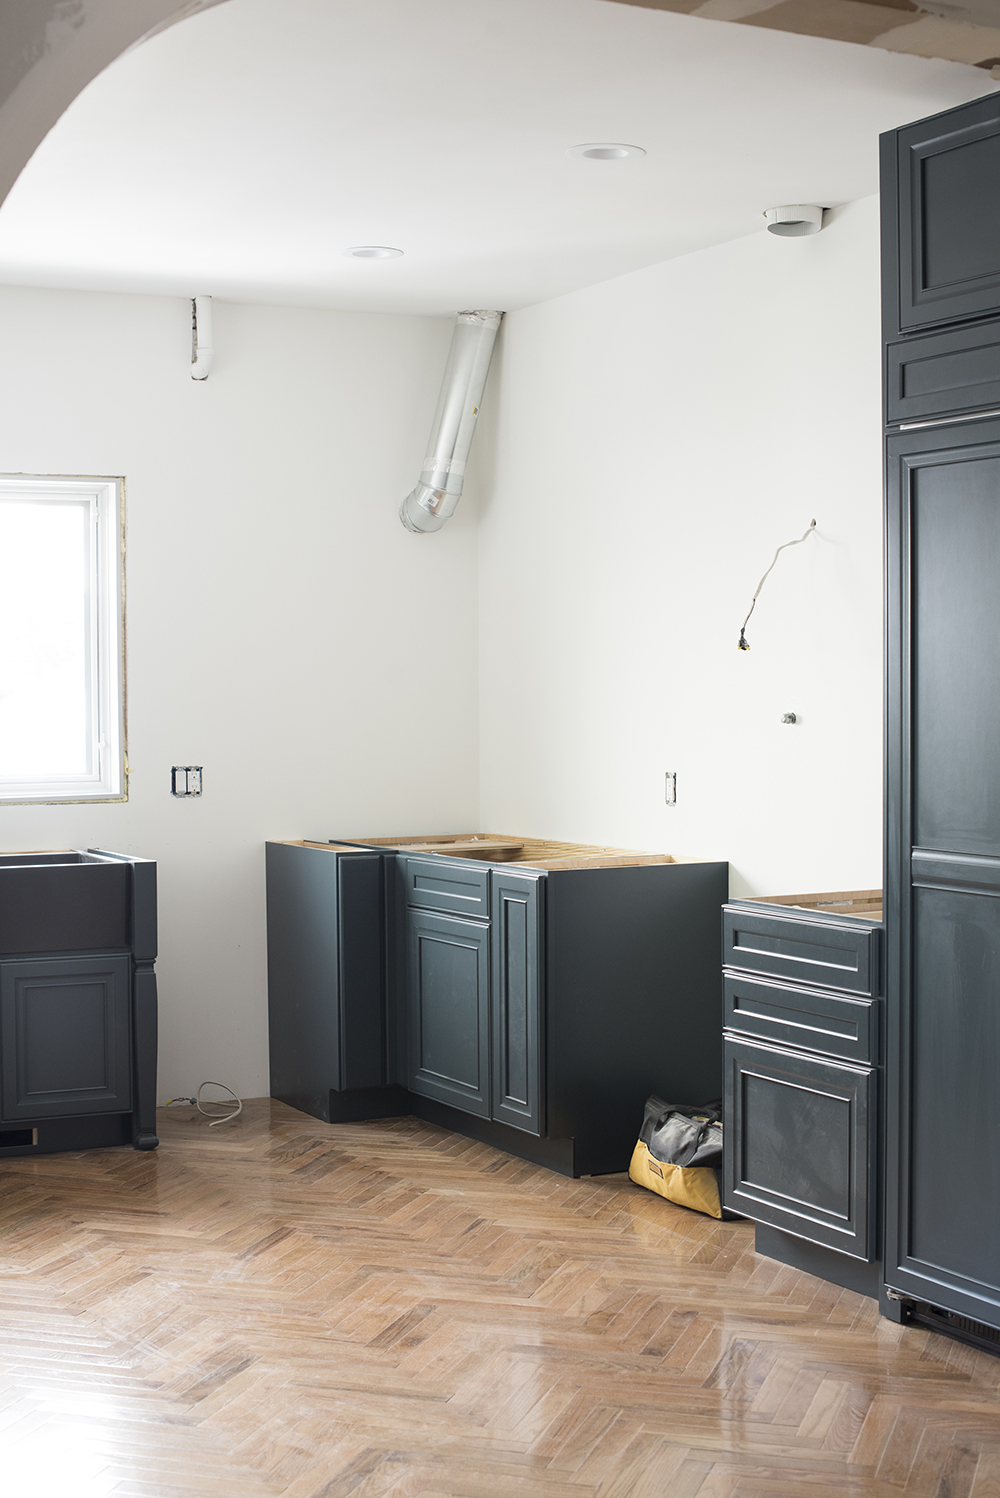 A Peek At Our Cabinetry Installation Process - roomfortuesday.com